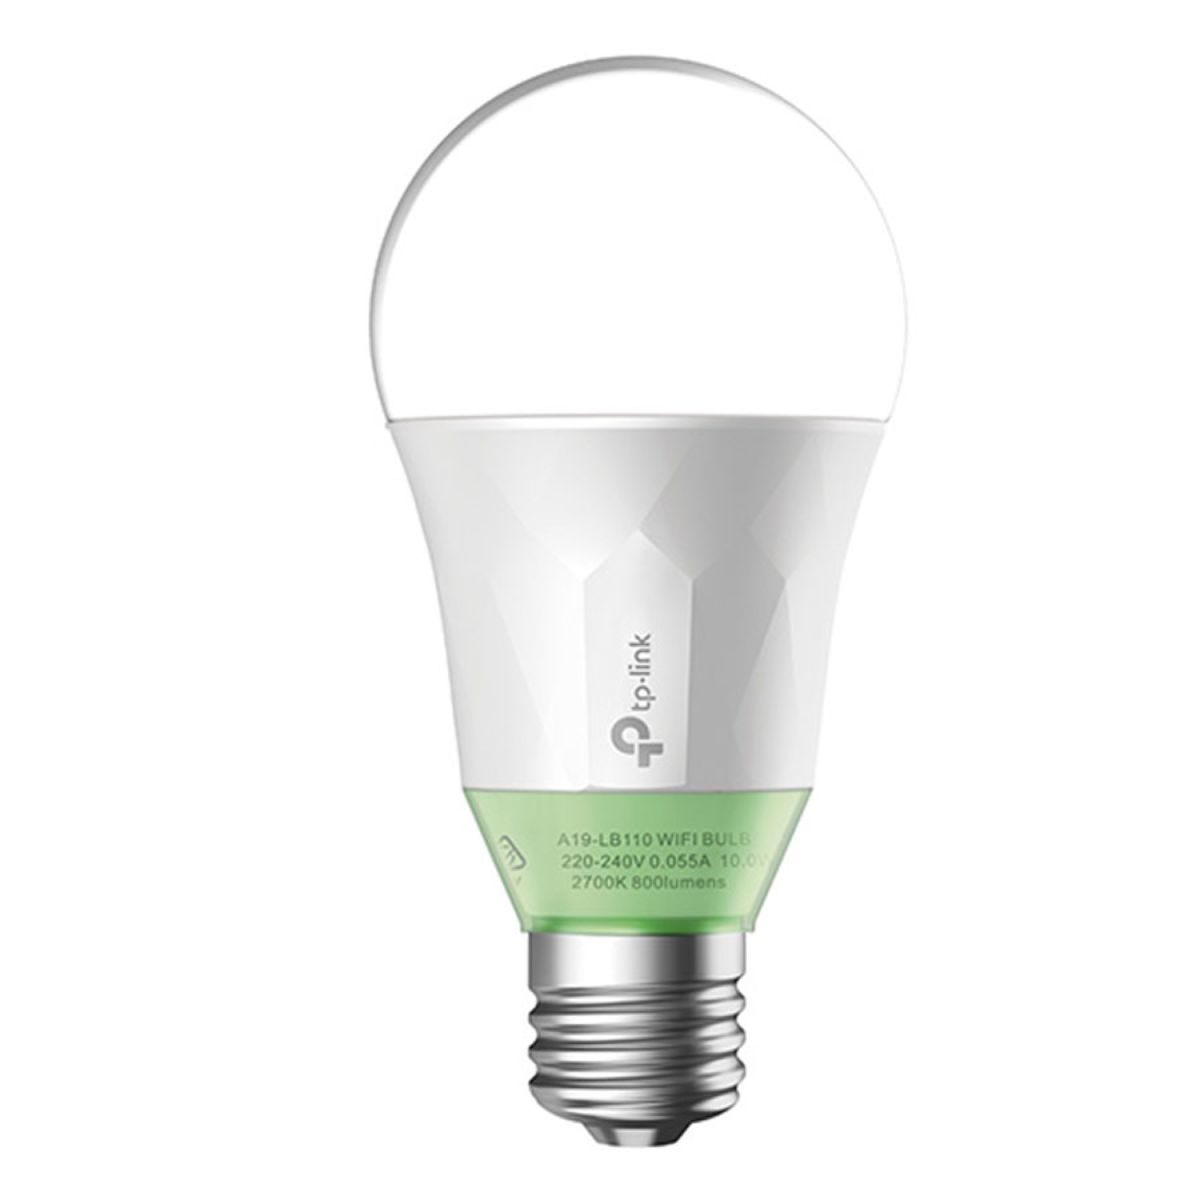 TP-Link LB110 Smart Wi-Fi Dimmable E27 LED Bulb - White